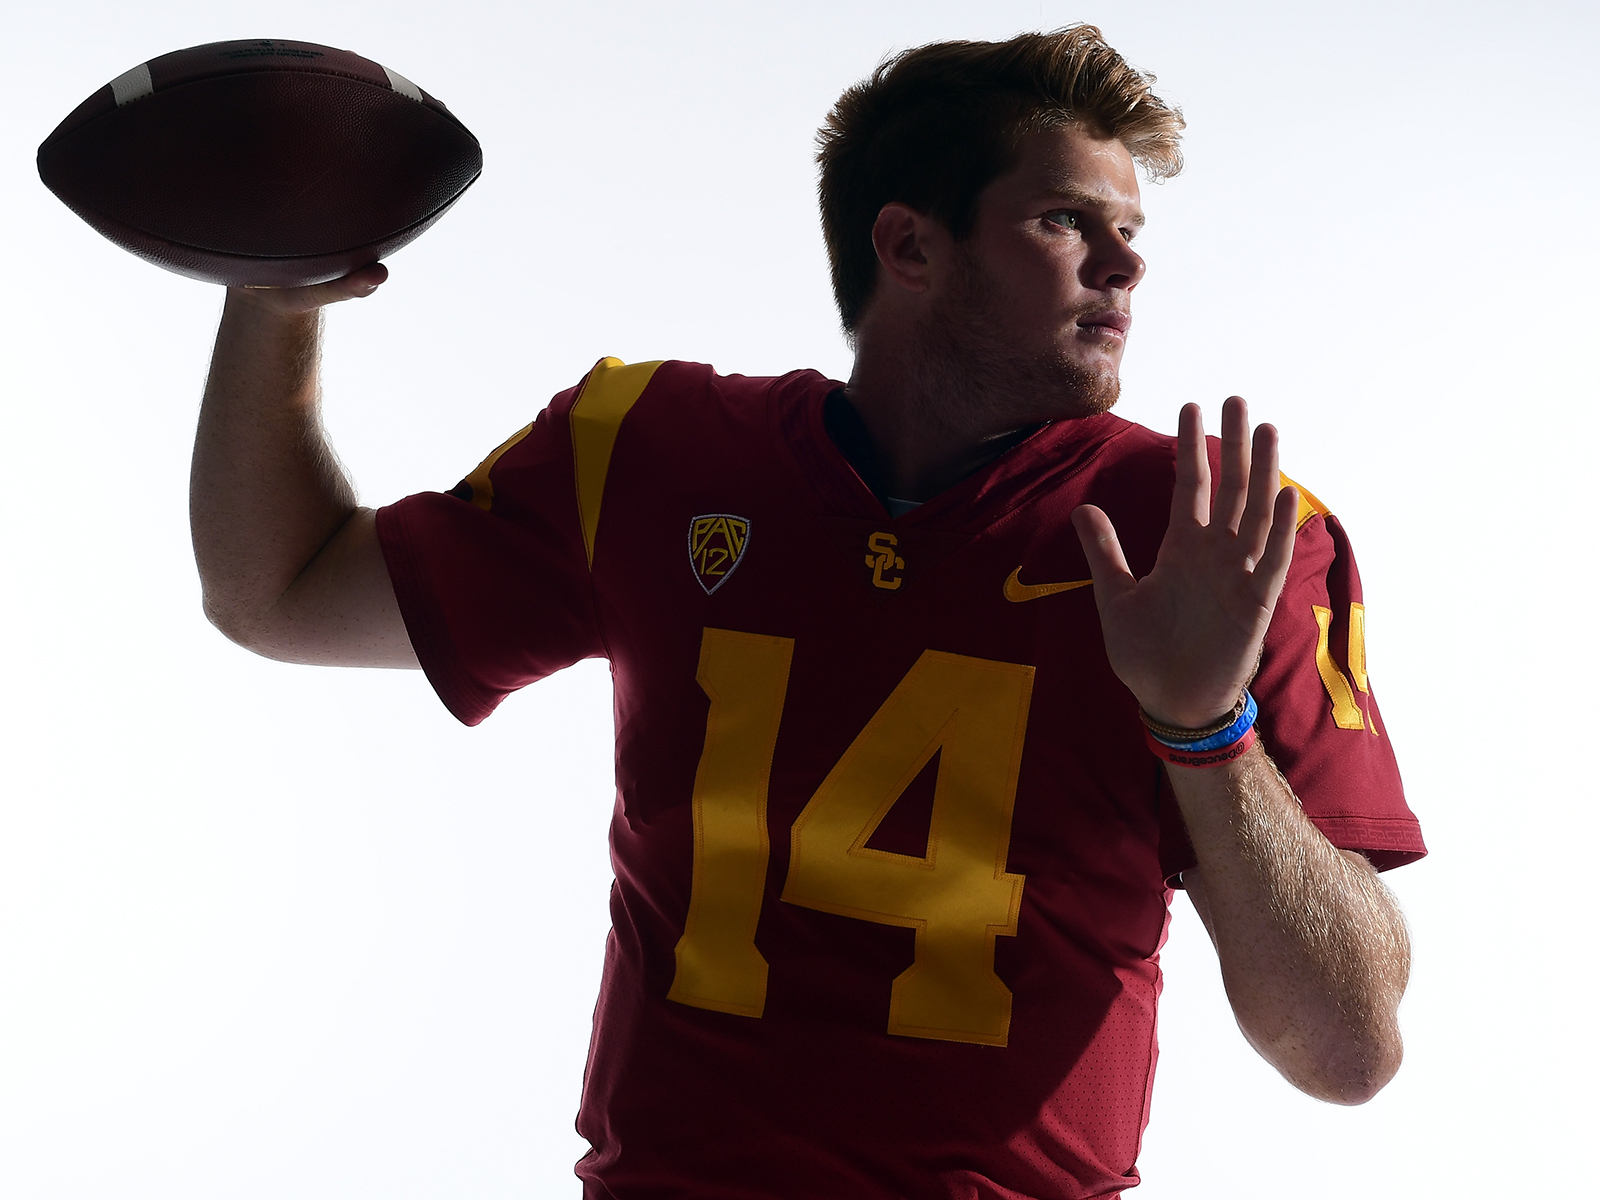 Sam Darnold USC QB has Heisman NFL draft in his sights